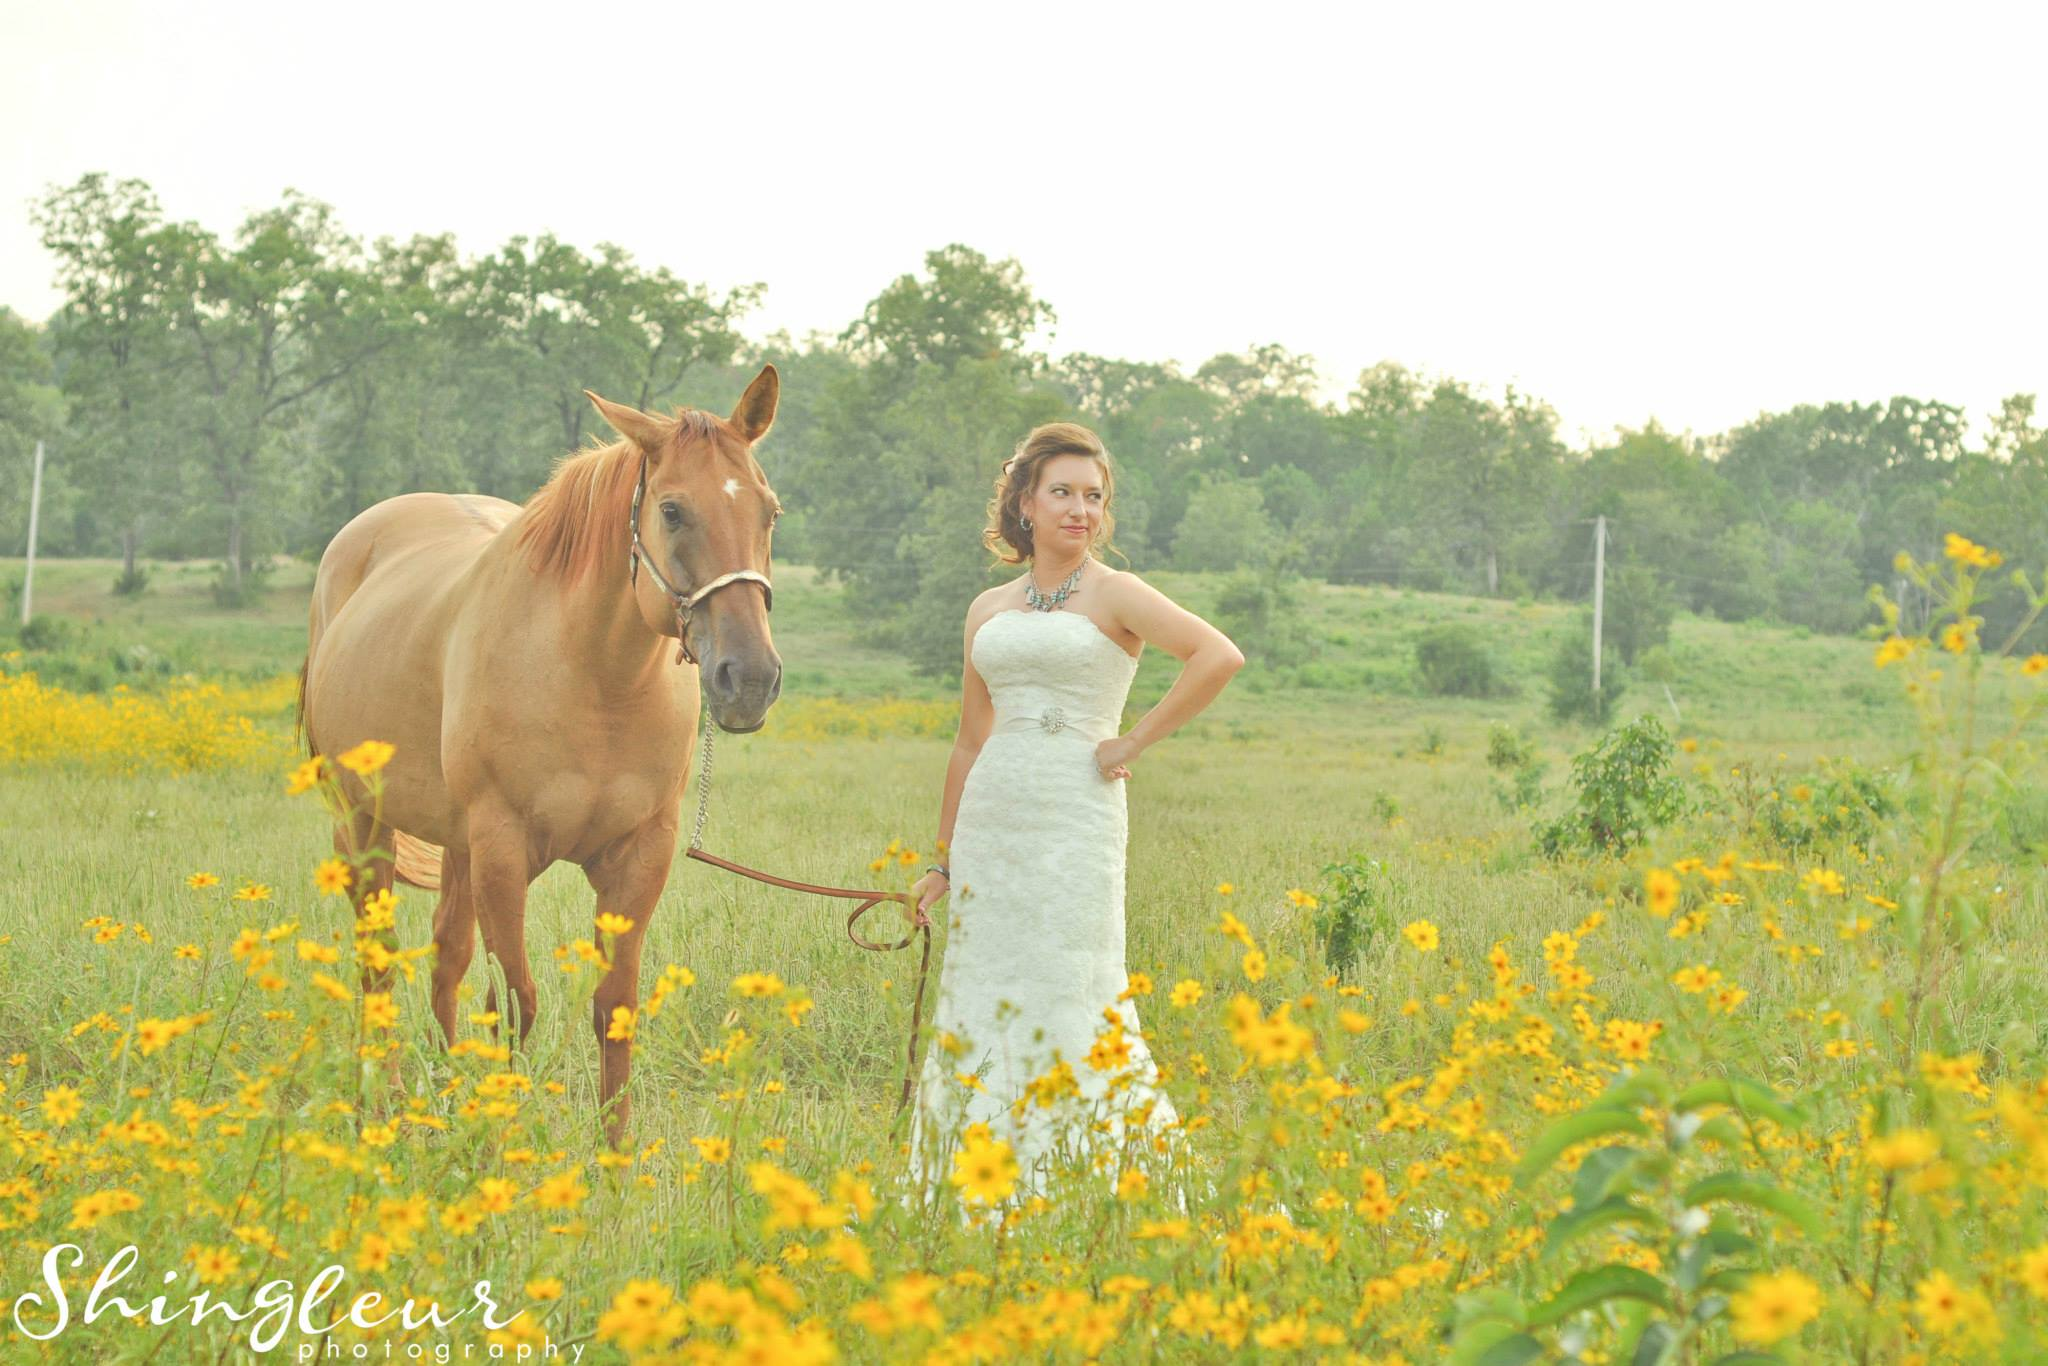 Shingleur Photography . Lindsy brought her horse along for her bridal shoot. How pretty is the land around The Barn when it's all yellow?! You can see more of her bridals  here  and read her wedding post  here .